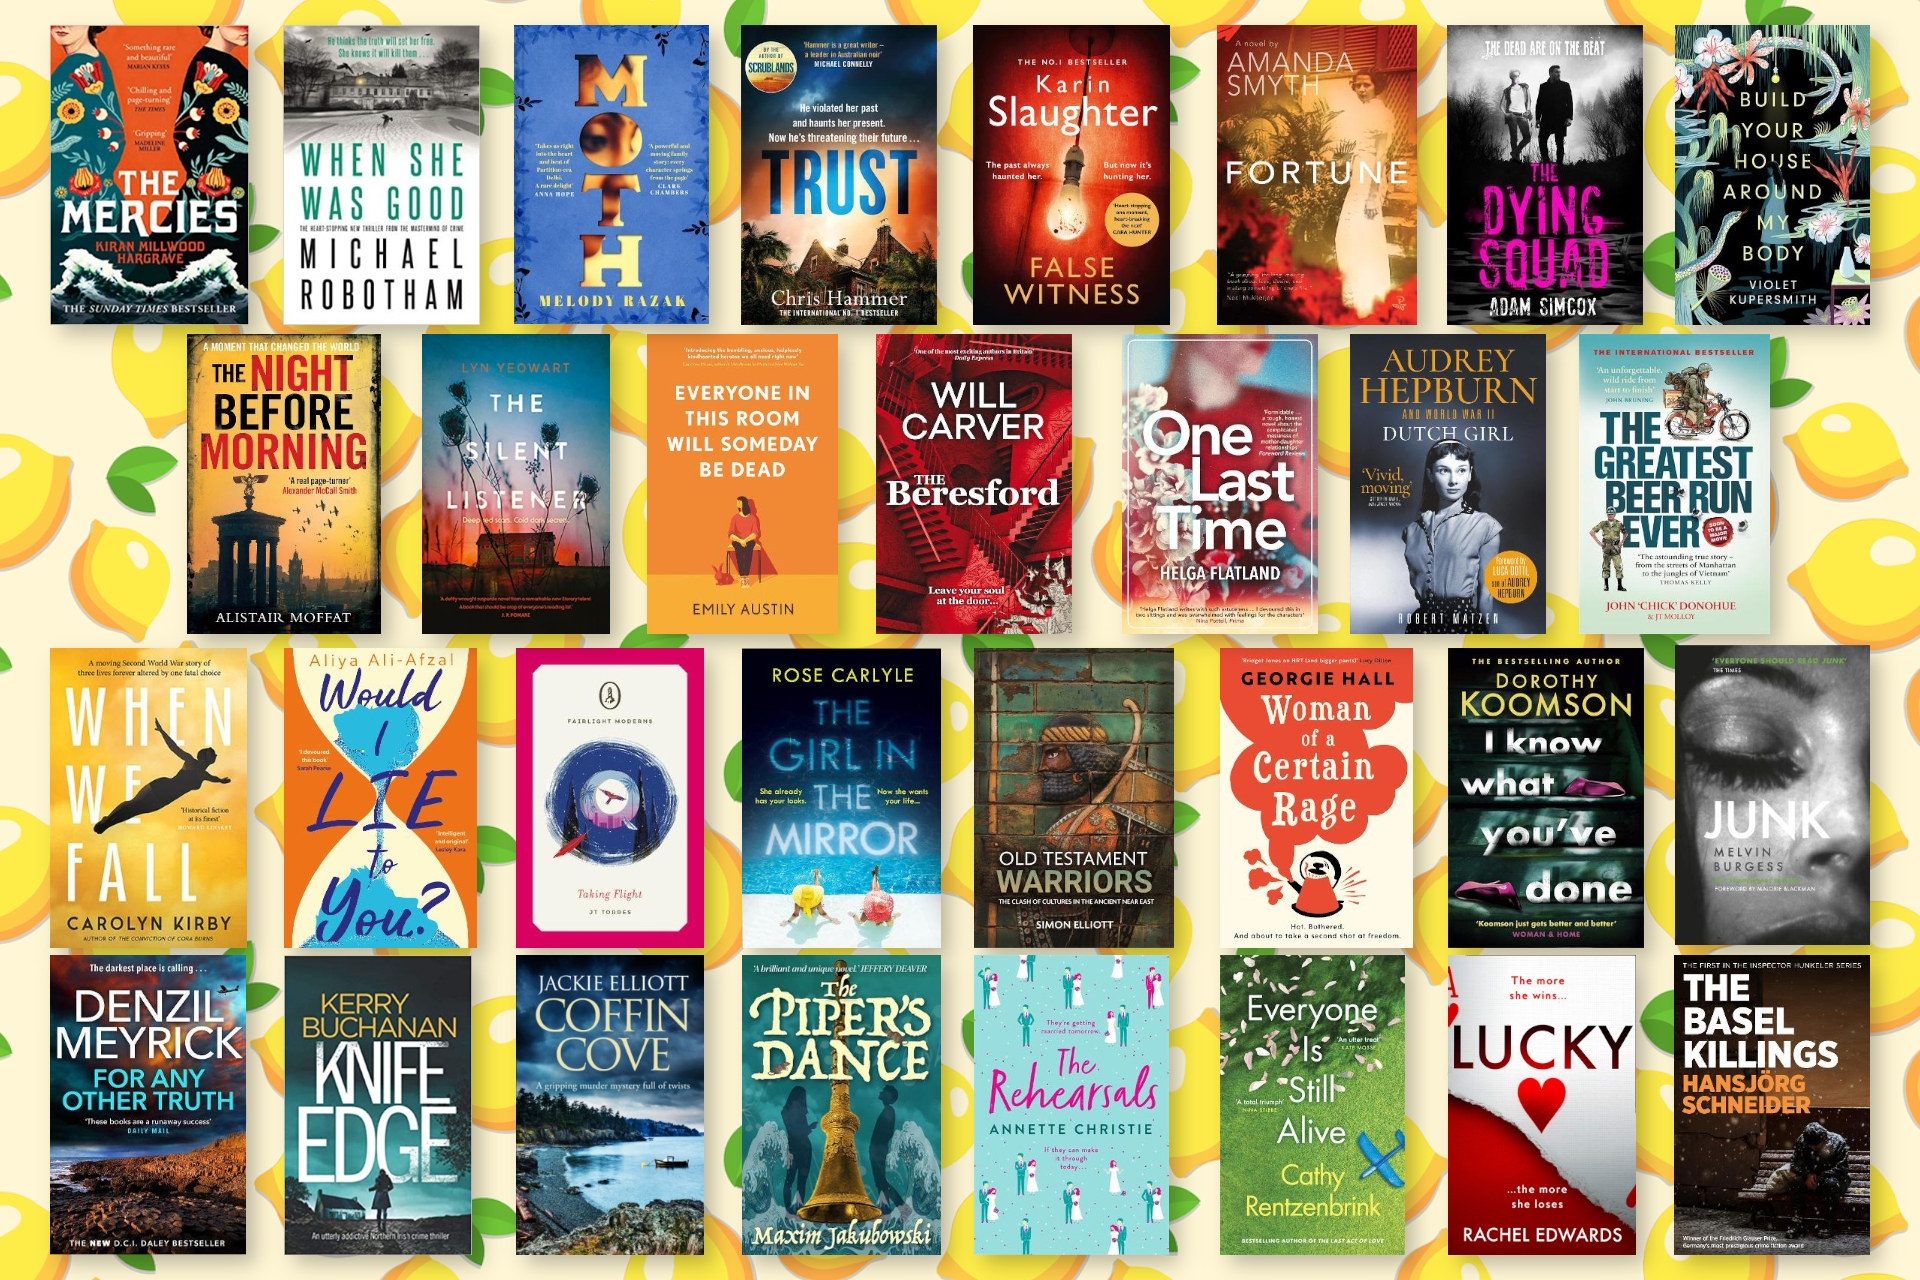 July is Nearly Over! Take a Look at our Roundup of Books We Have Loved this Month